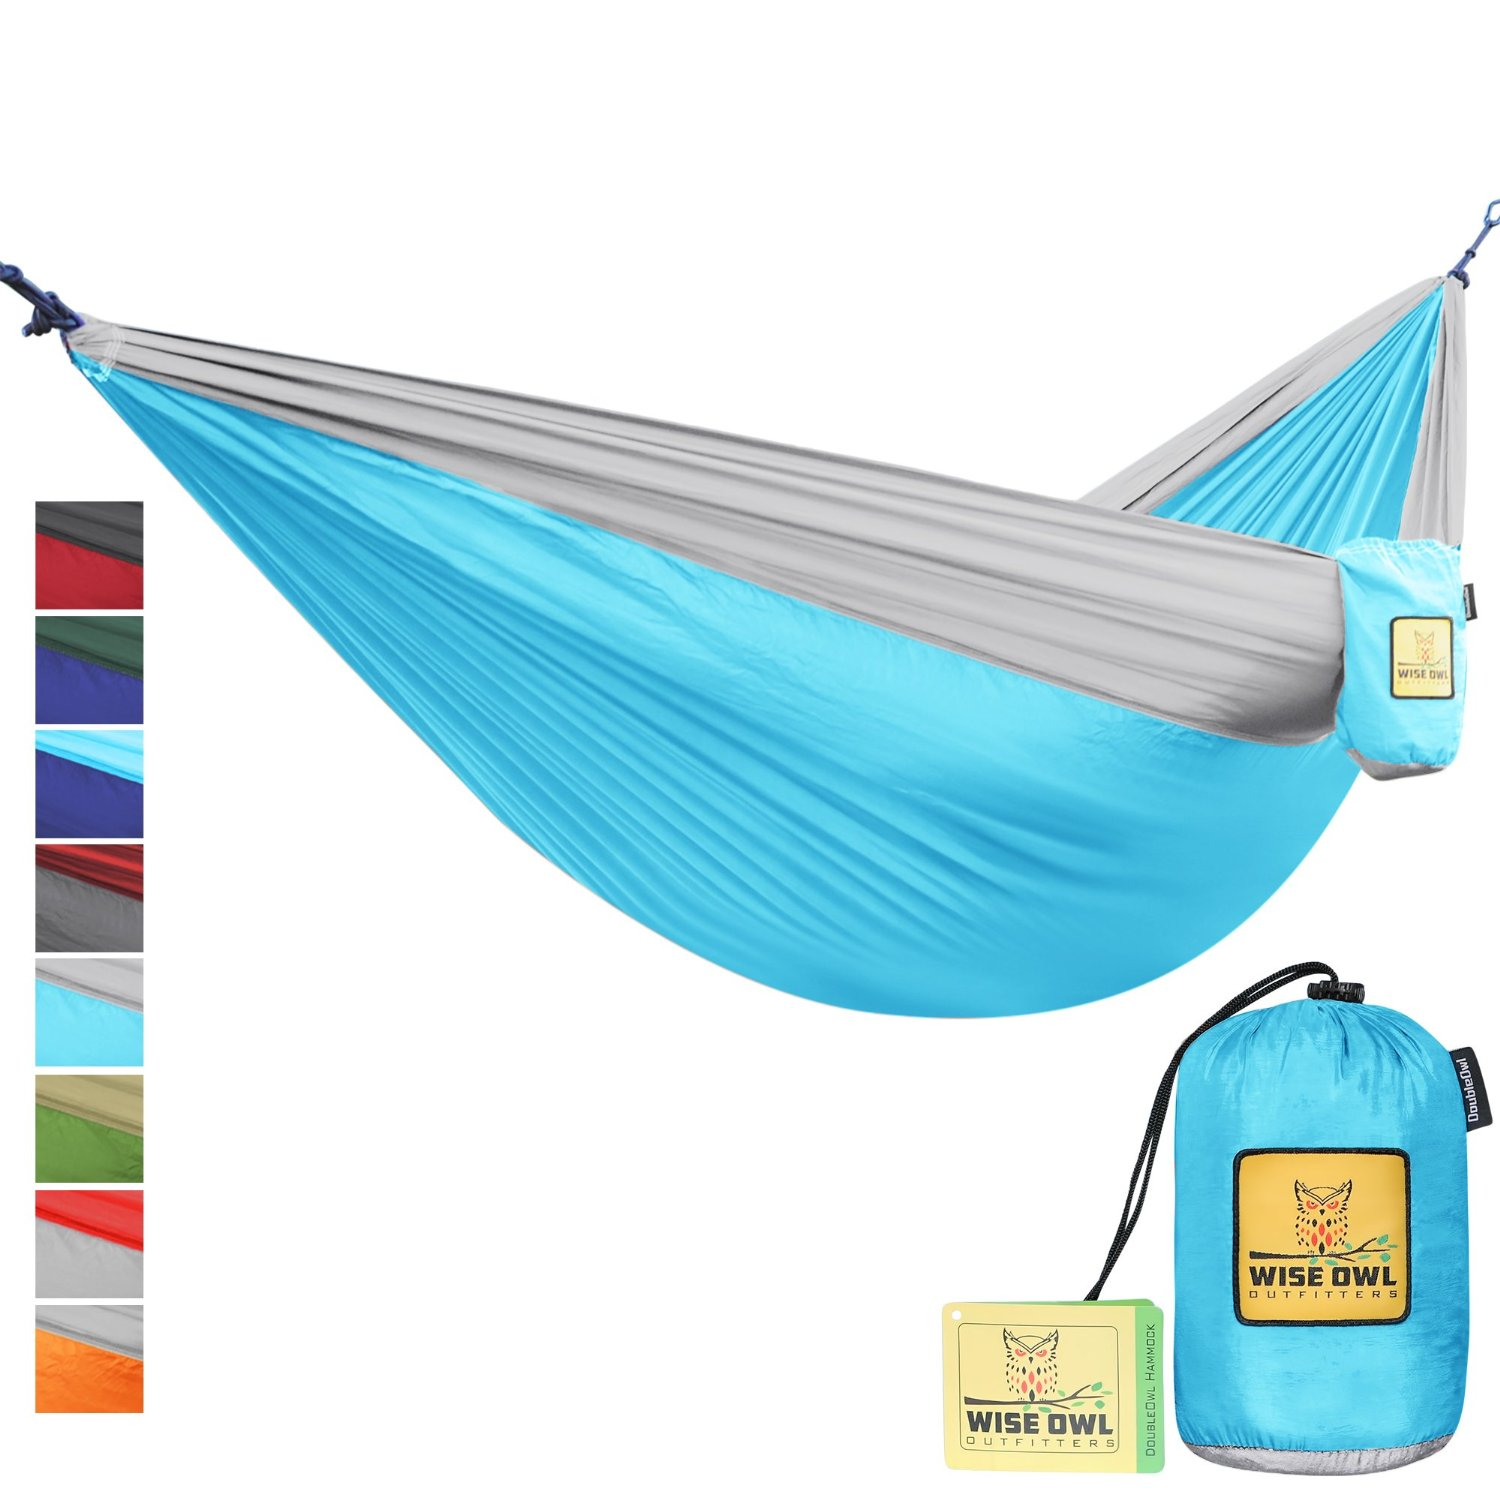 Top 10 Portable Hammock Reviews — Best Models of 2019 Only